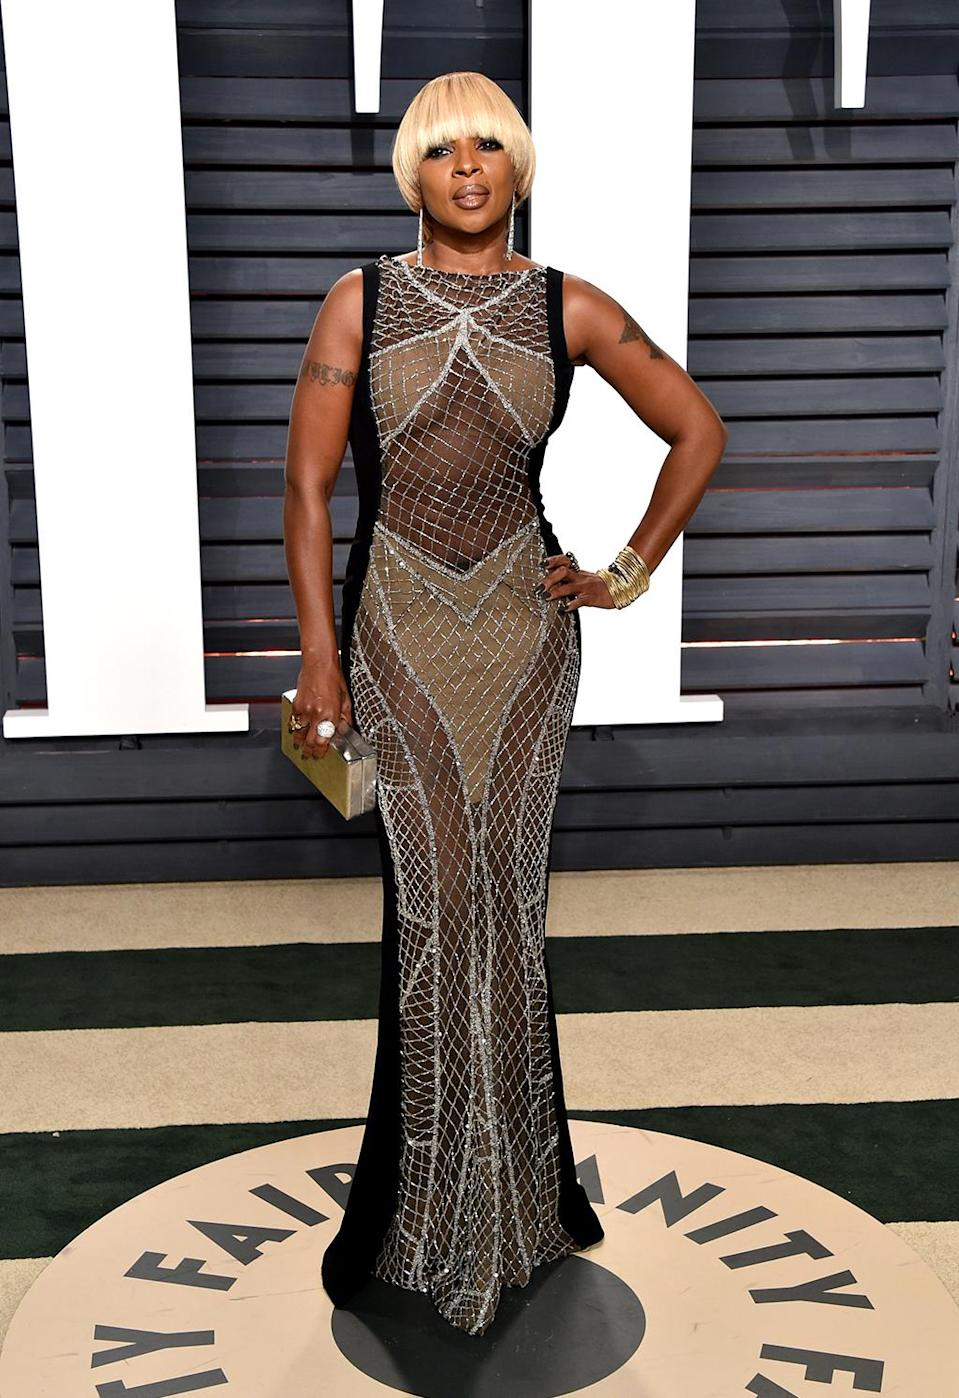 <p>Singer Mary J. Blige attends the 2017 Vanity Fair Oscar Party hosted by Graydon Carter at Wallis Annenberg Center for the Performing Arts on February 26, 2017 in Beverly Hills, California. (Photo by John Shearer/Getty Images) </p>